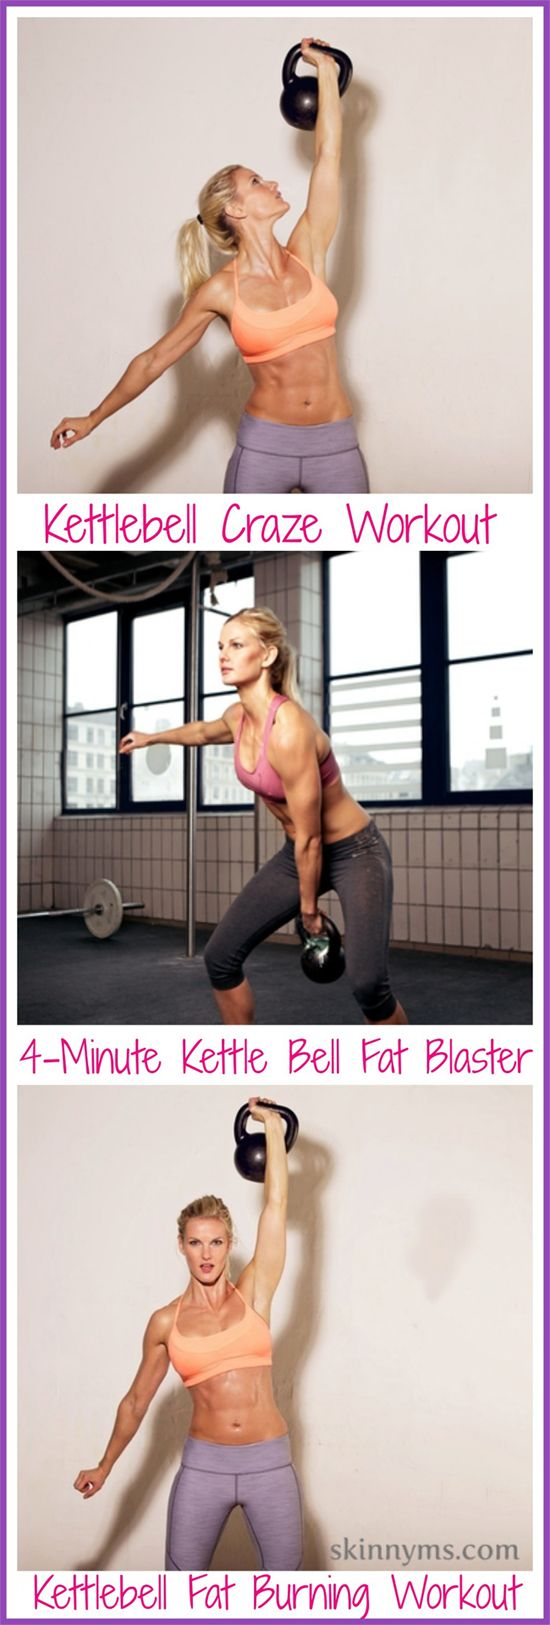 Top 3 Kettlebell Workout Routines - Fat Burning Workouts